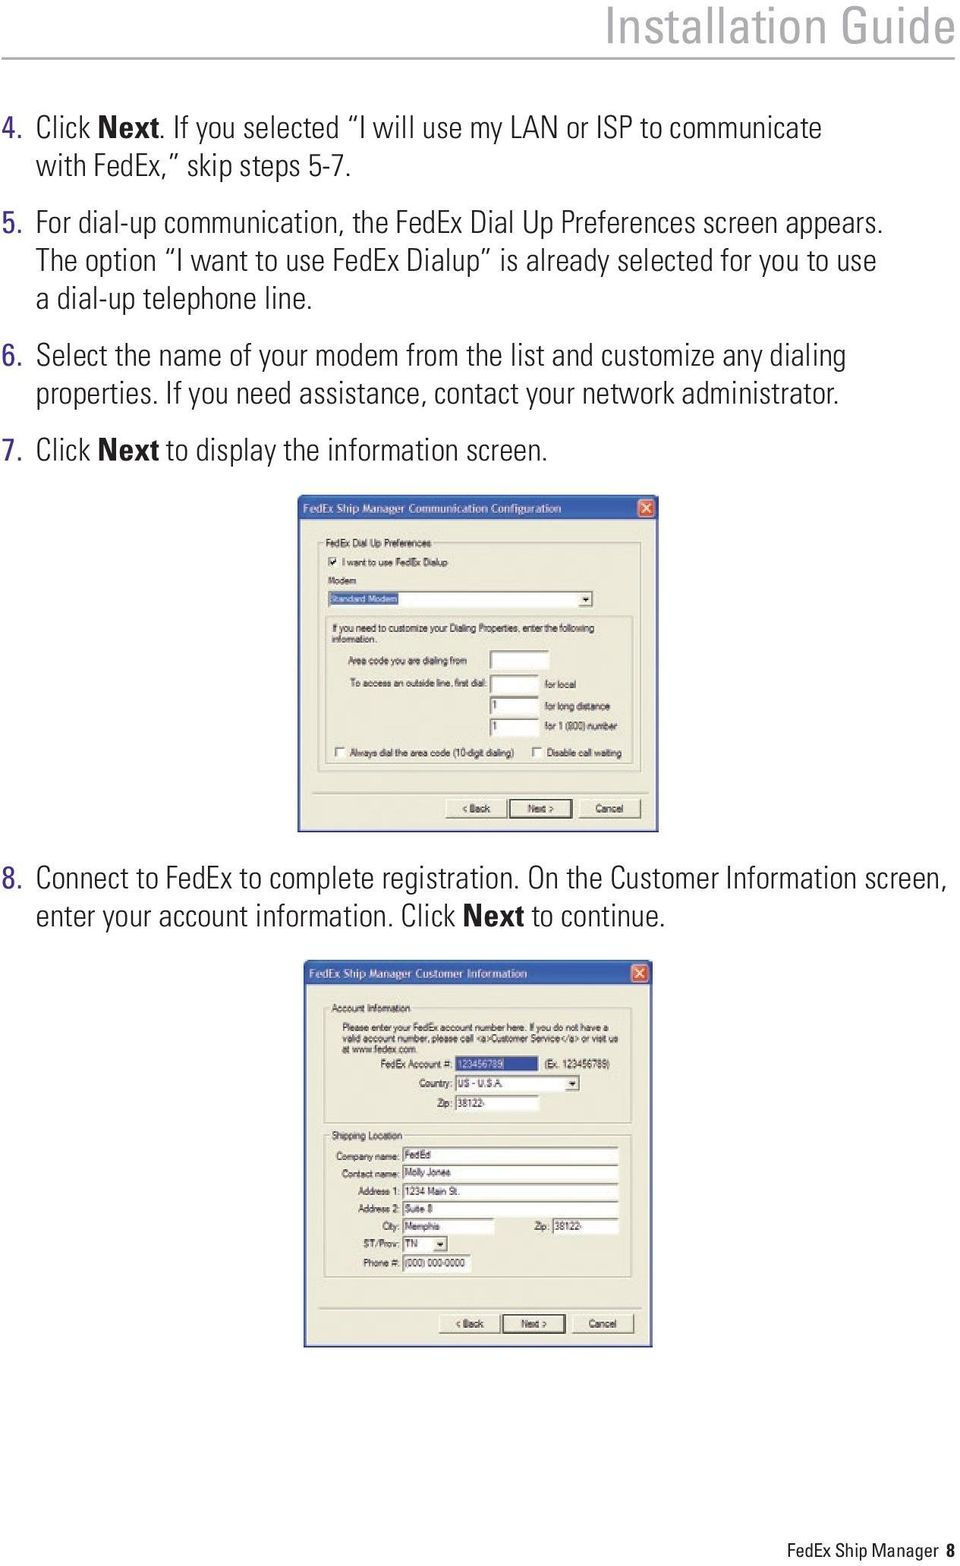 Installation Guide  Your FedEx Ship Manager system number